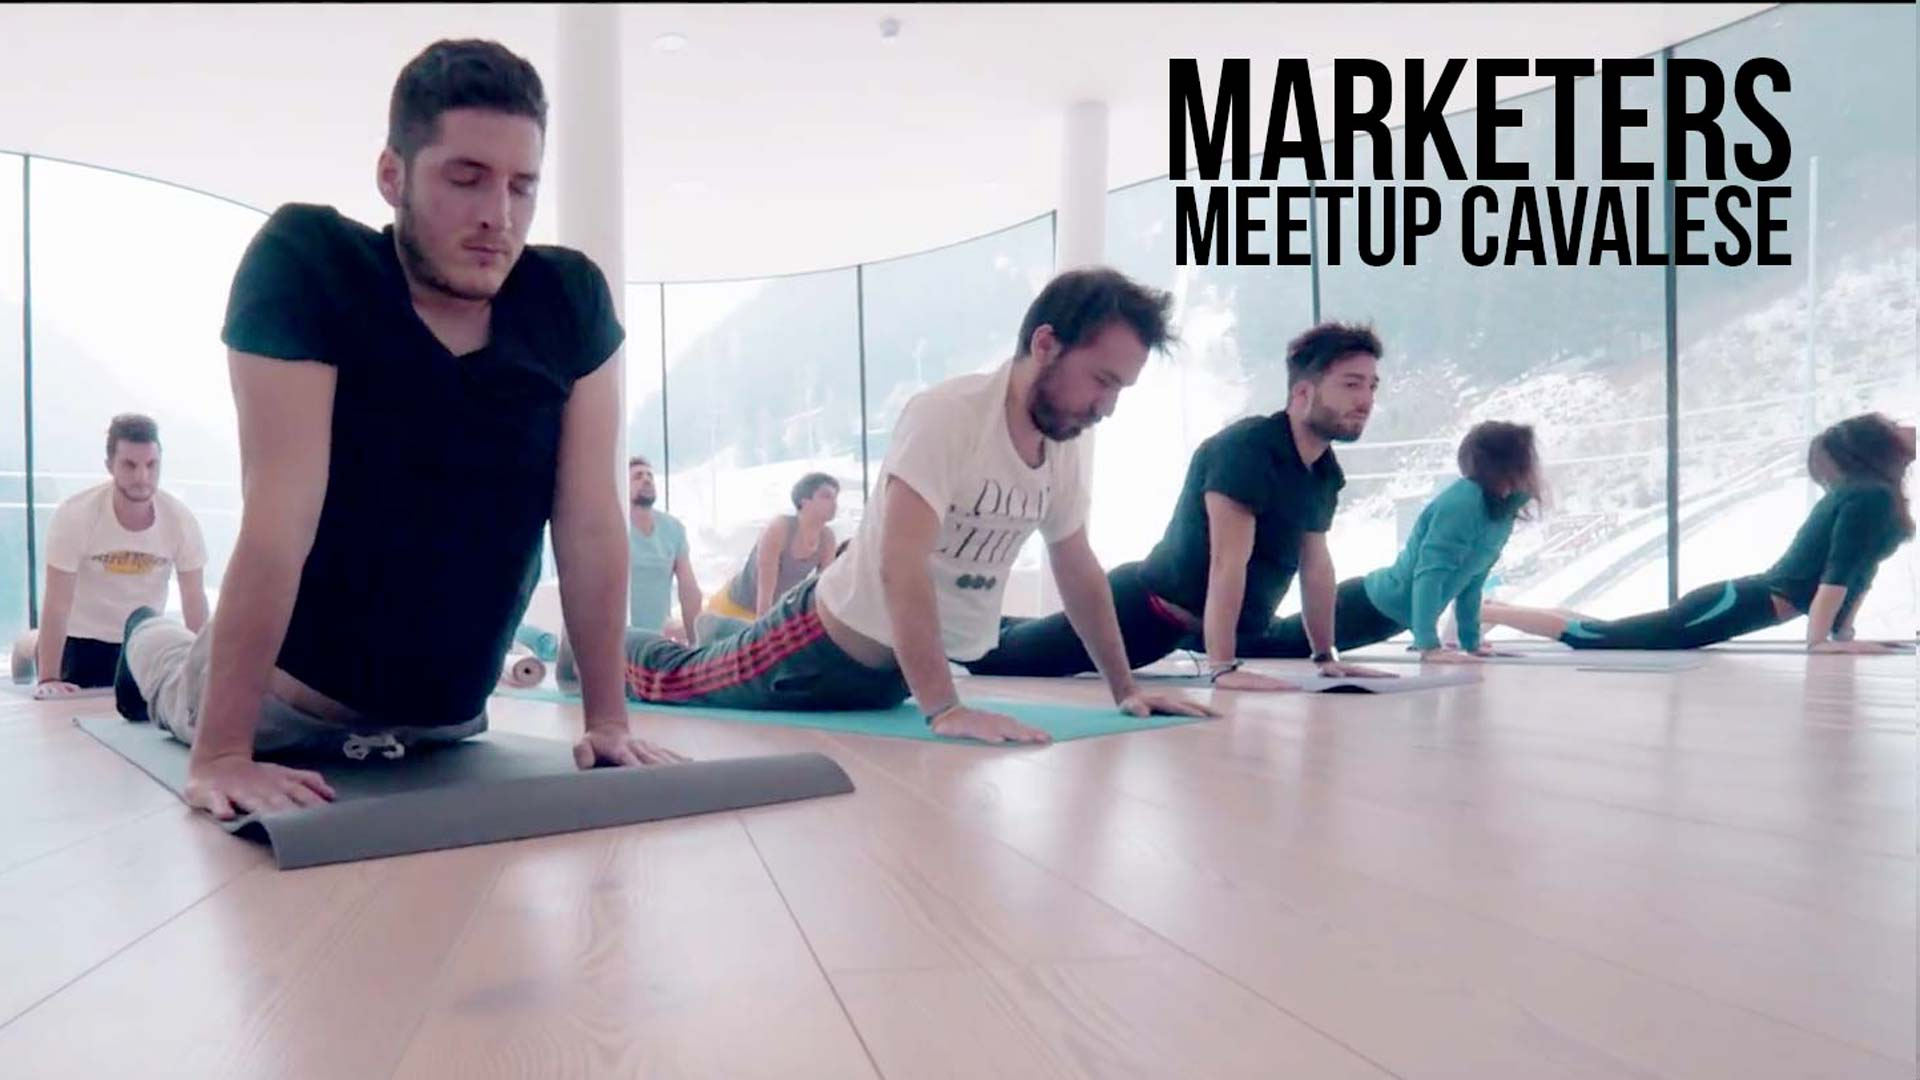 Marketers meetup - Cavalese